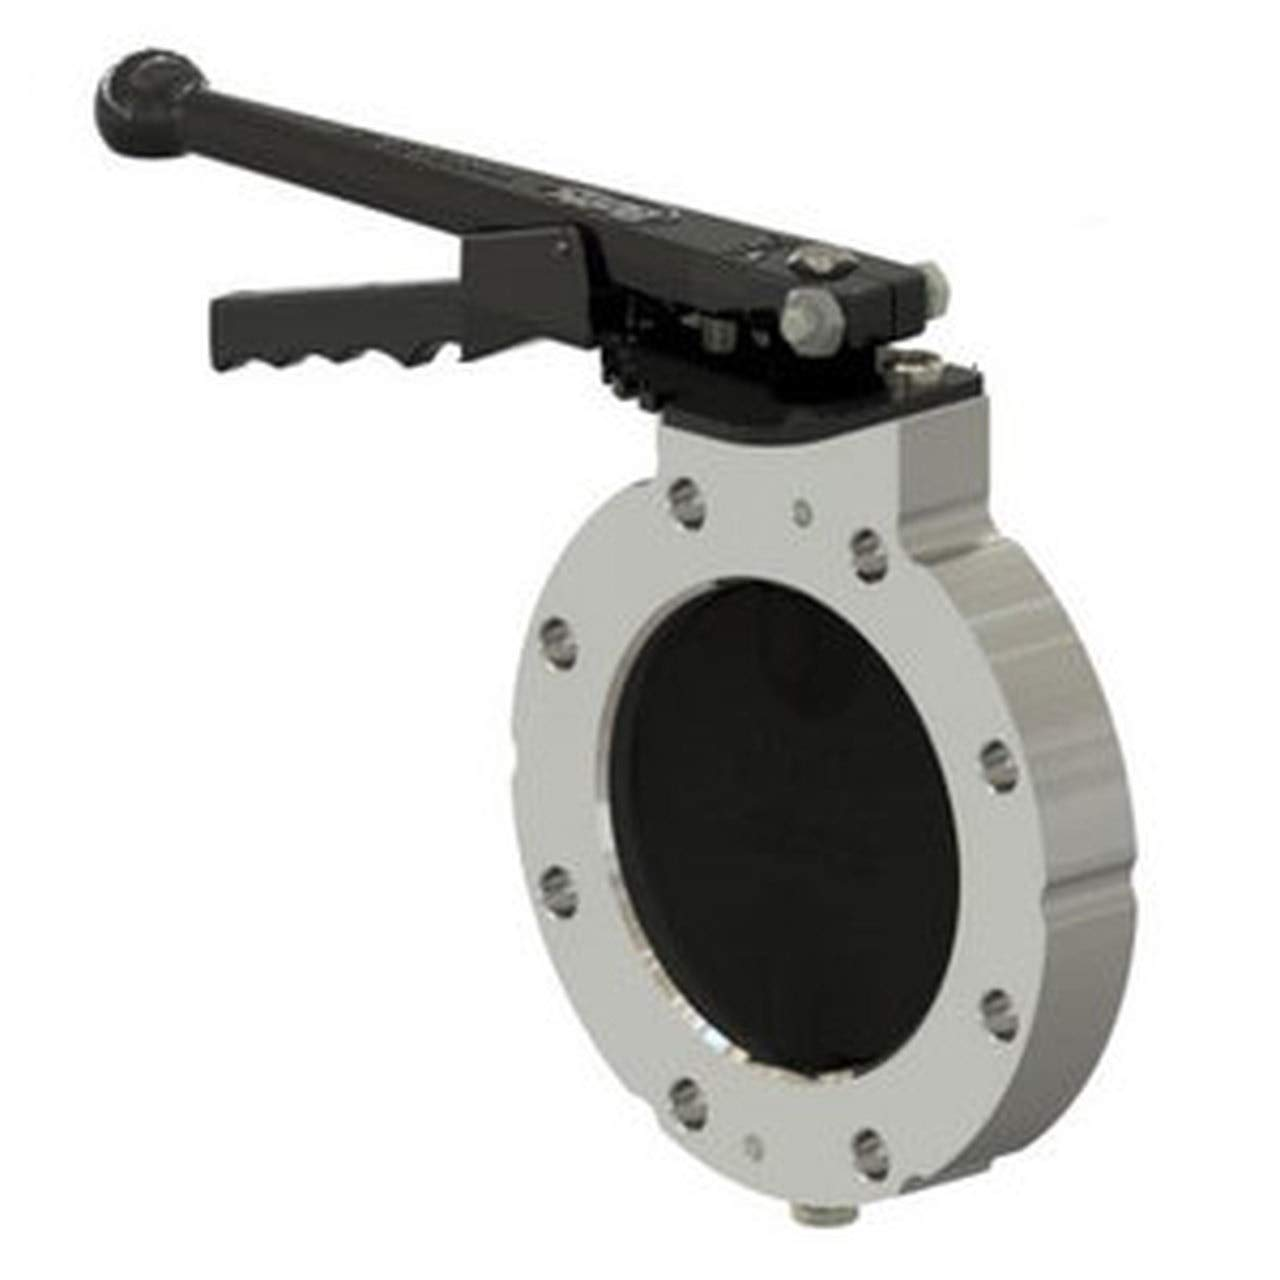 Locking Indexing Plate Betts Locking /& Metering Wet-R-Dri Valve Parts 4a